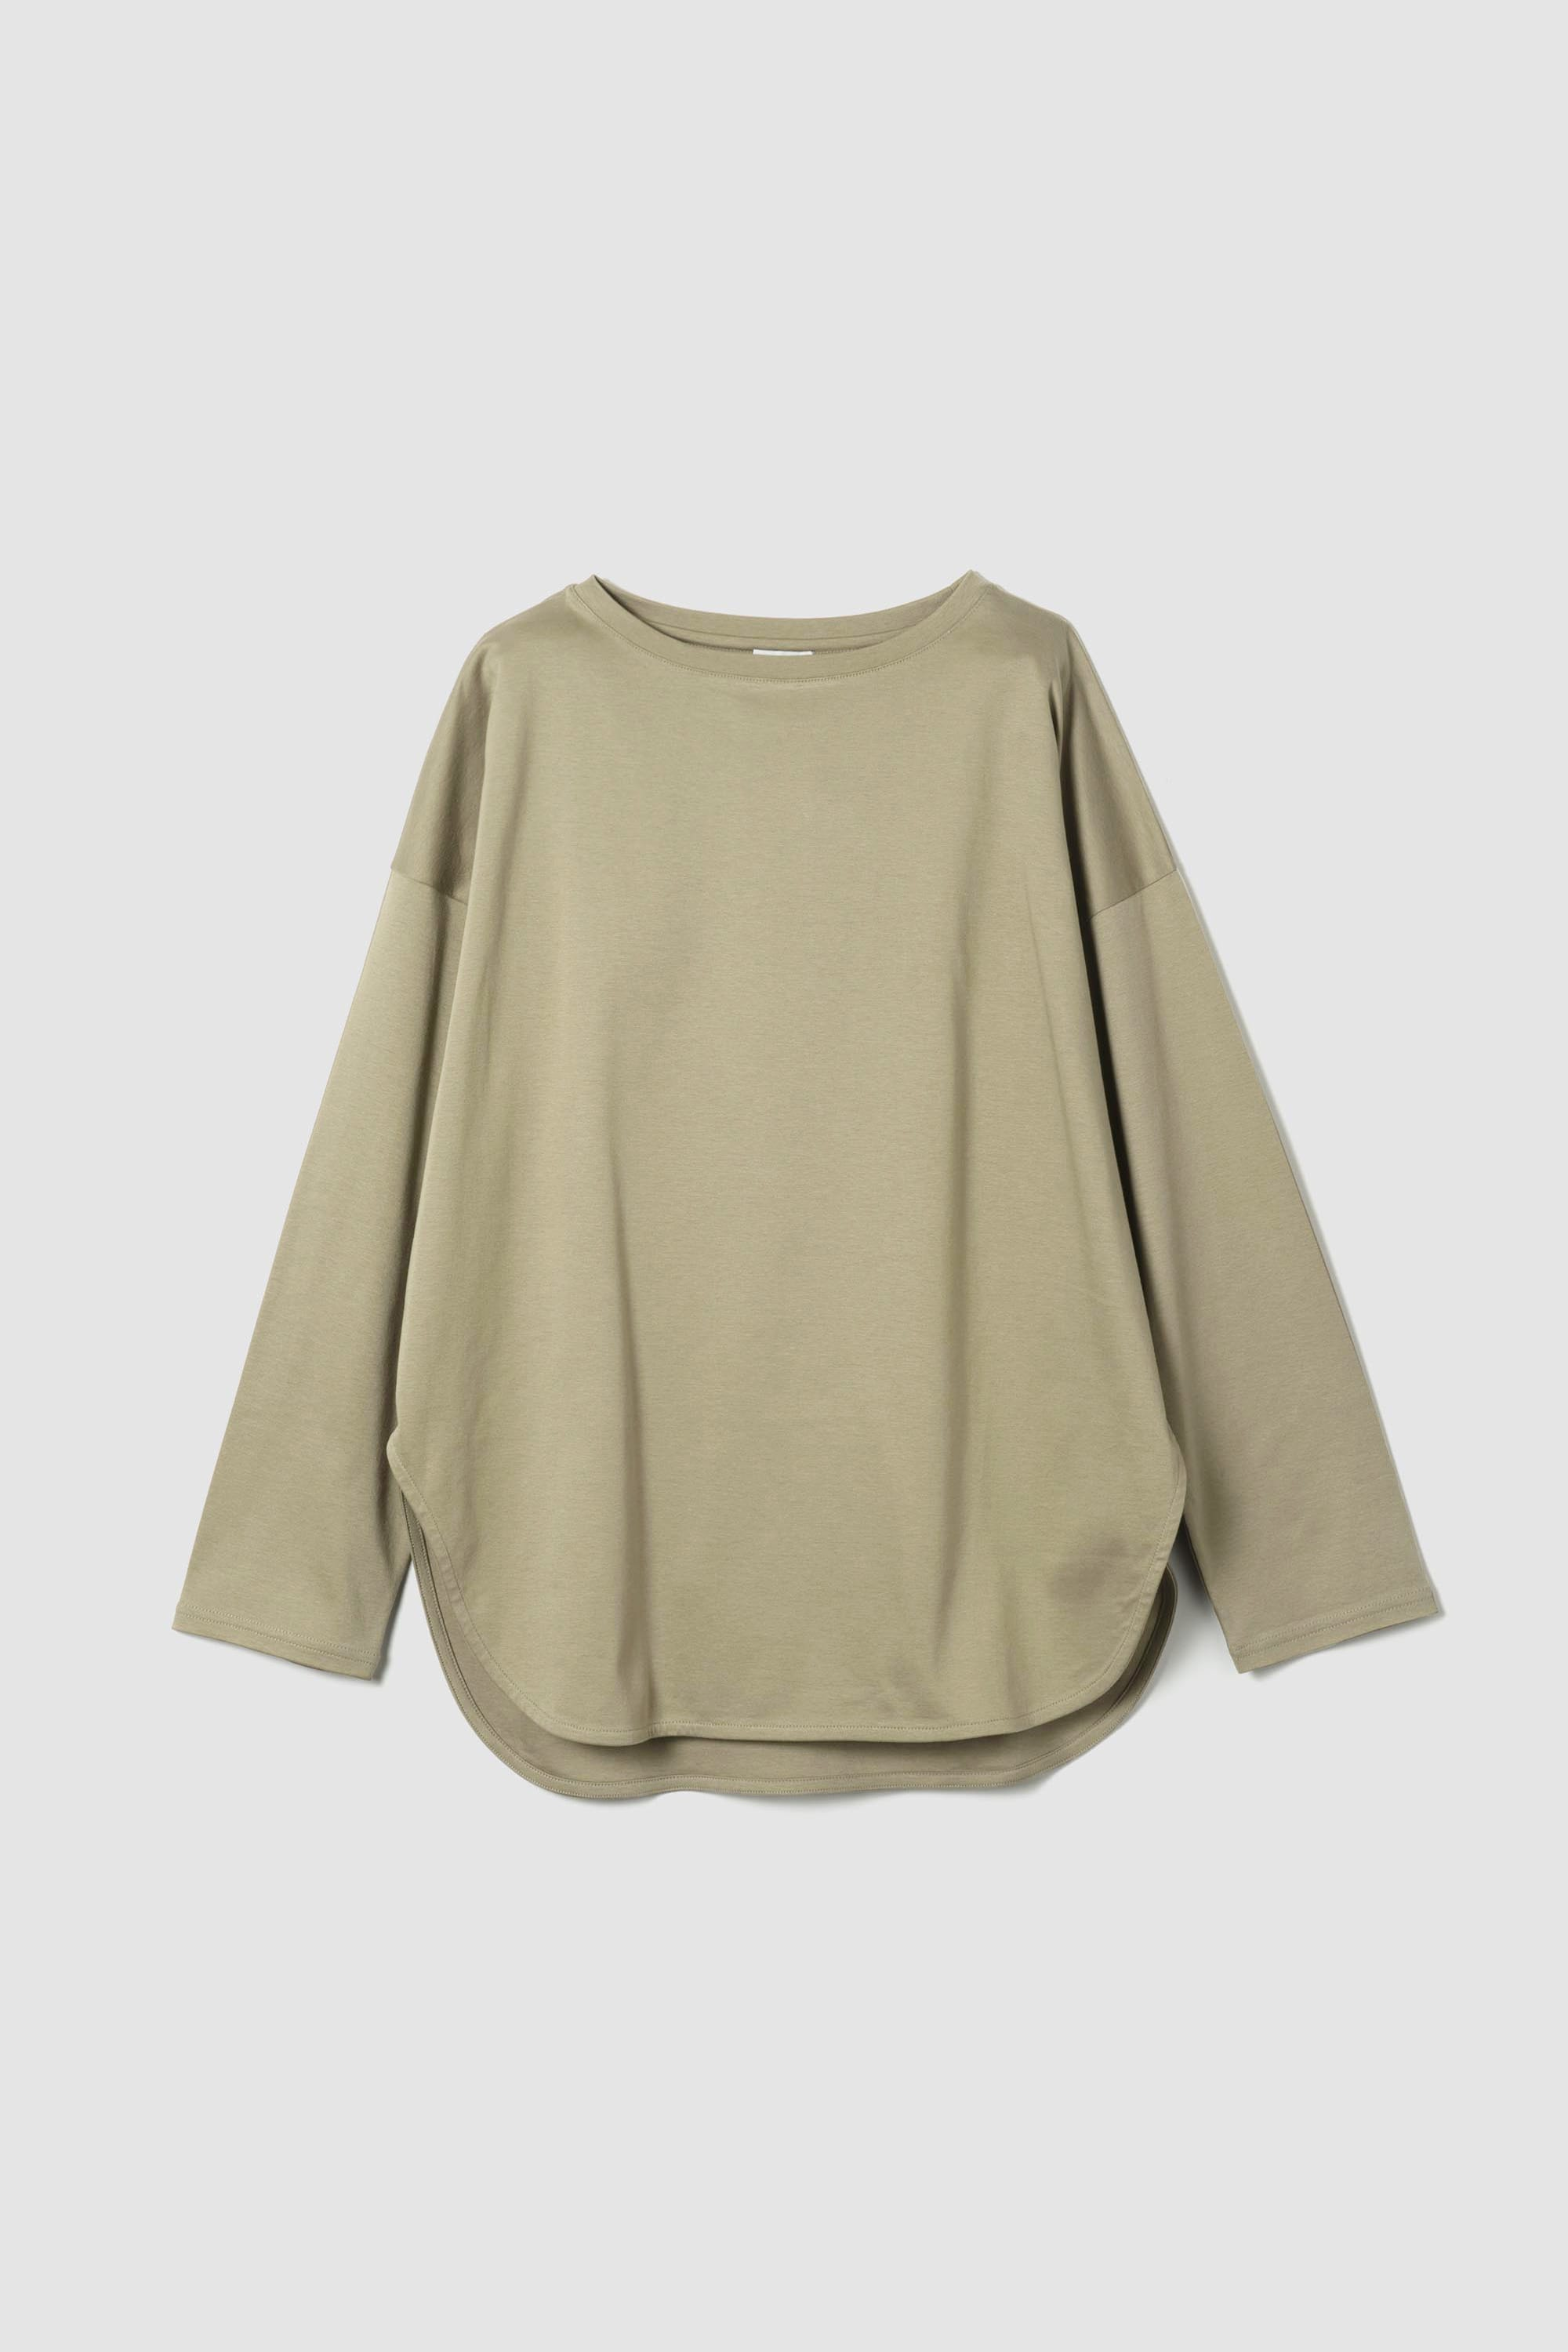 BOAT NECK TOPS